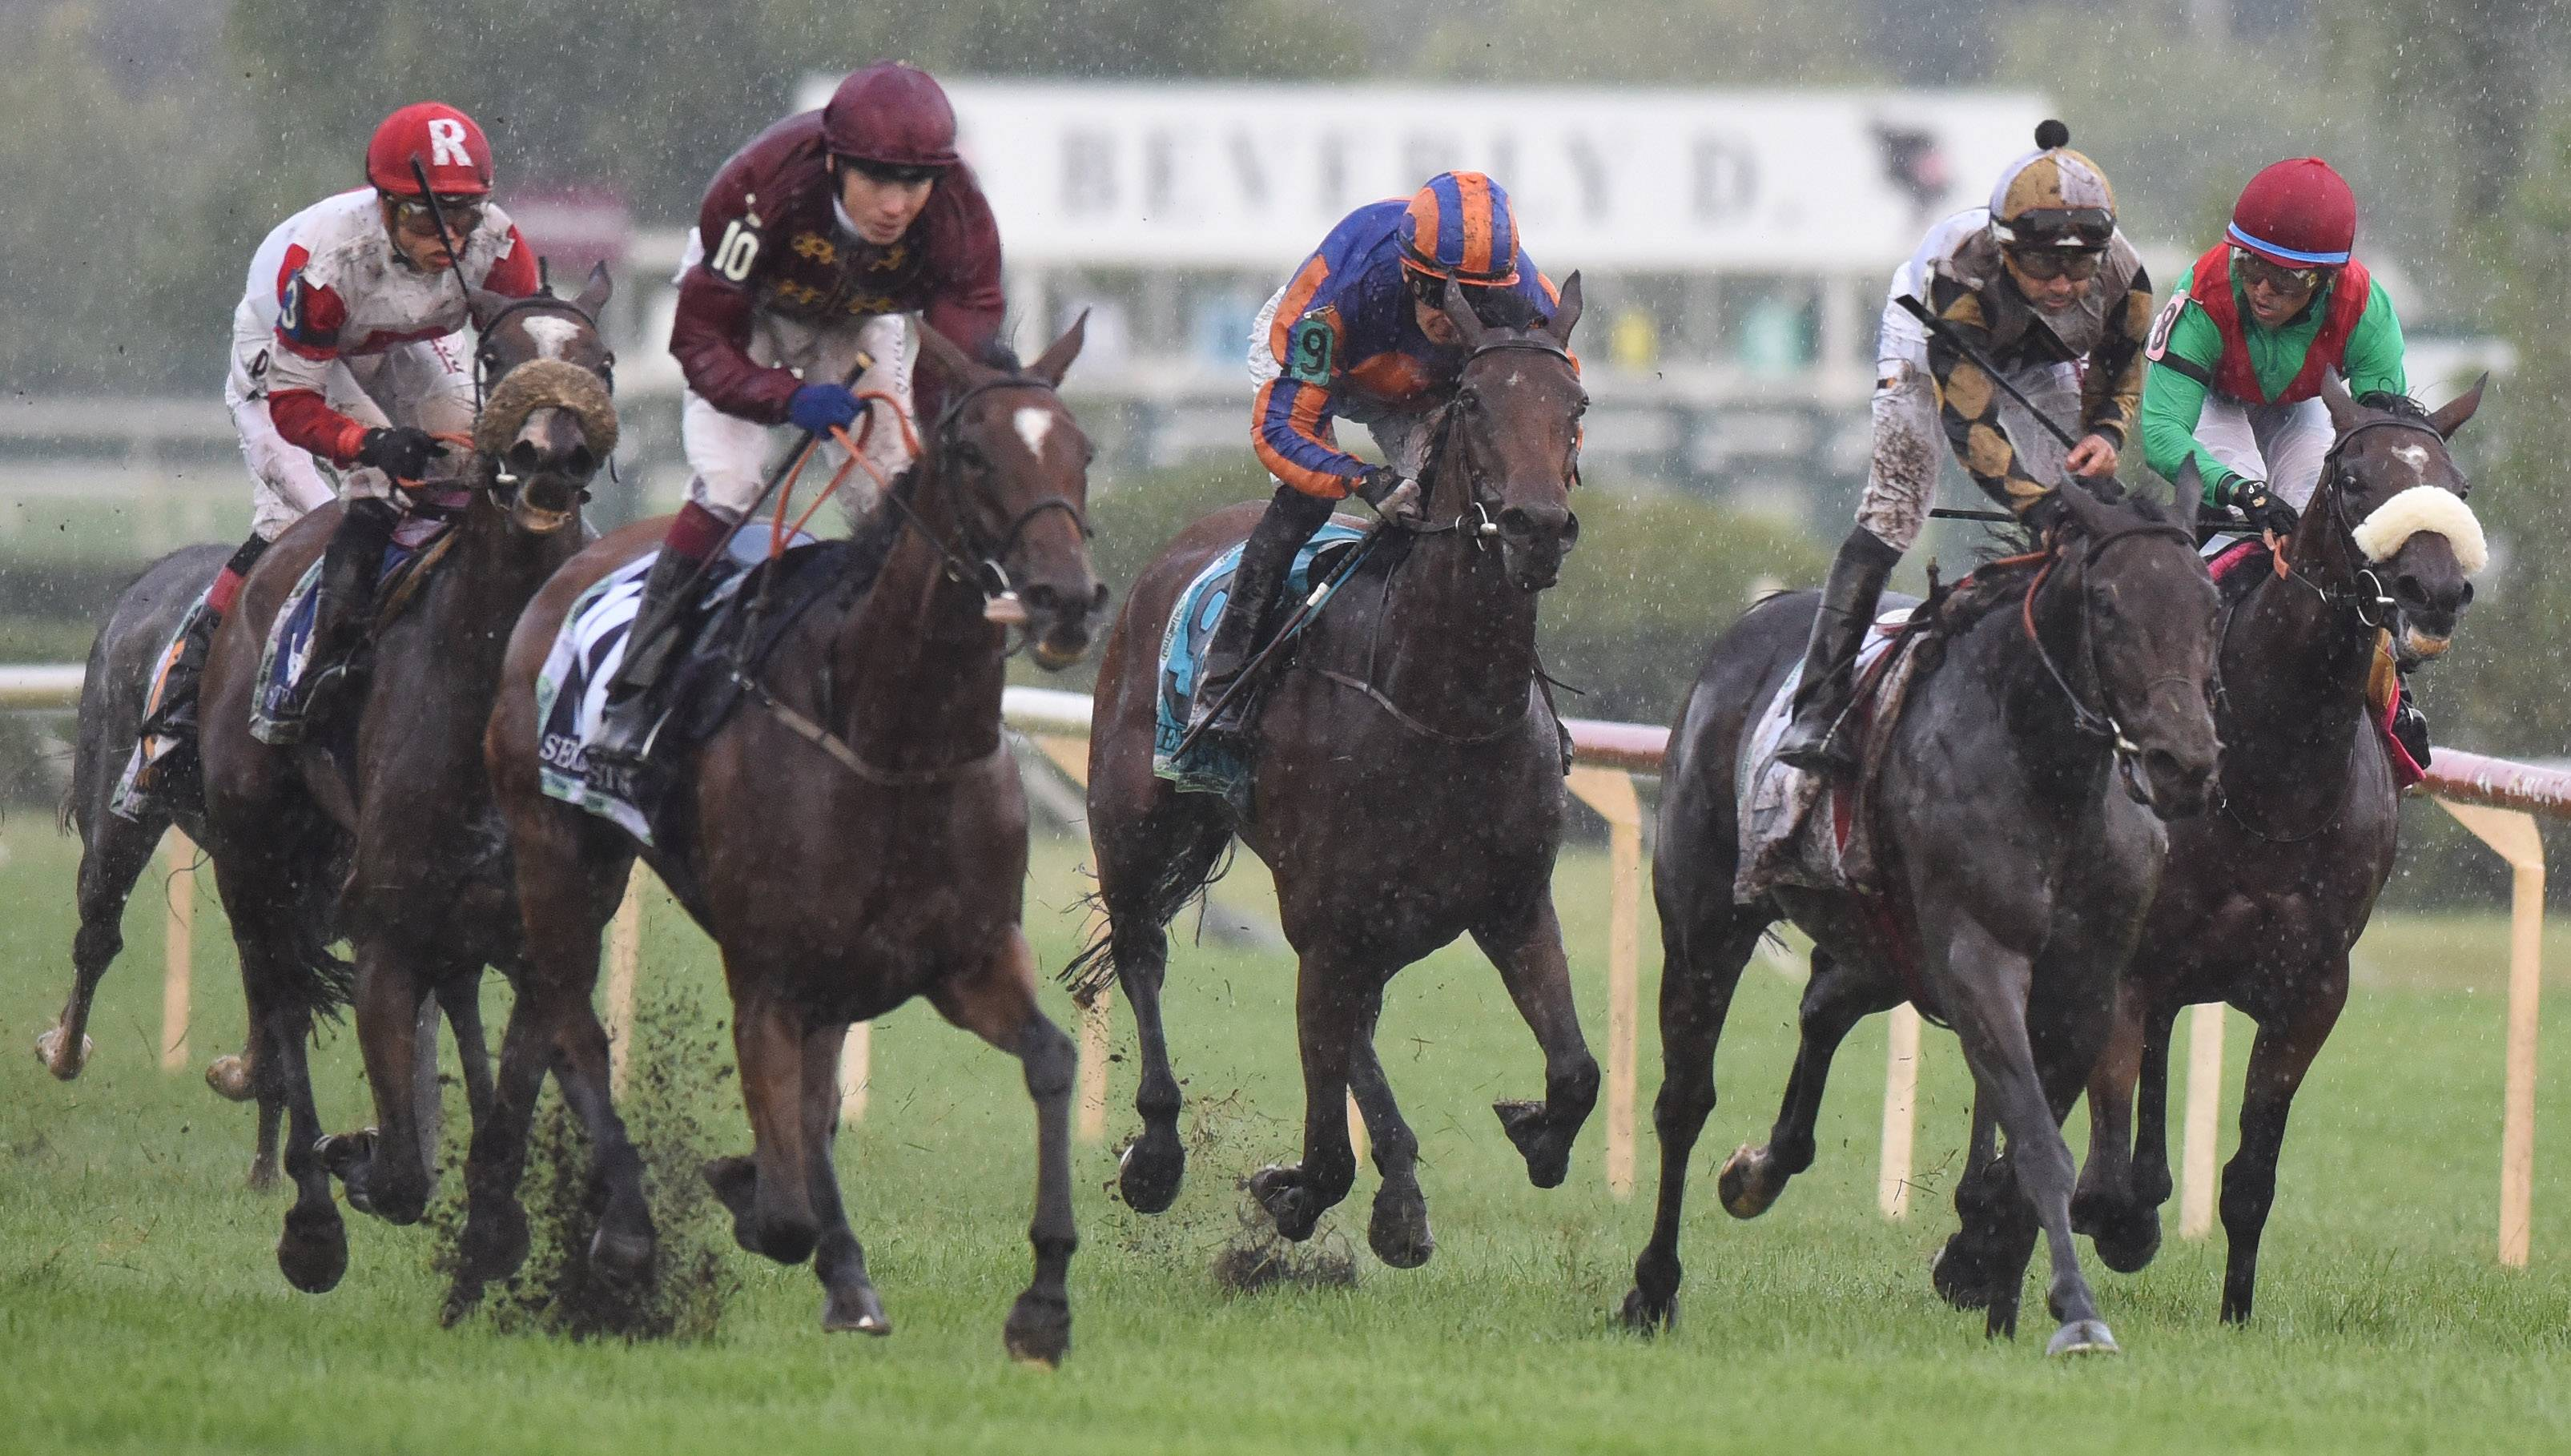 Watsdachances, second from right, with jockey Joe Bravo, is the winner of The Beverly D. during Arlington International Festival of Racing Saturday.